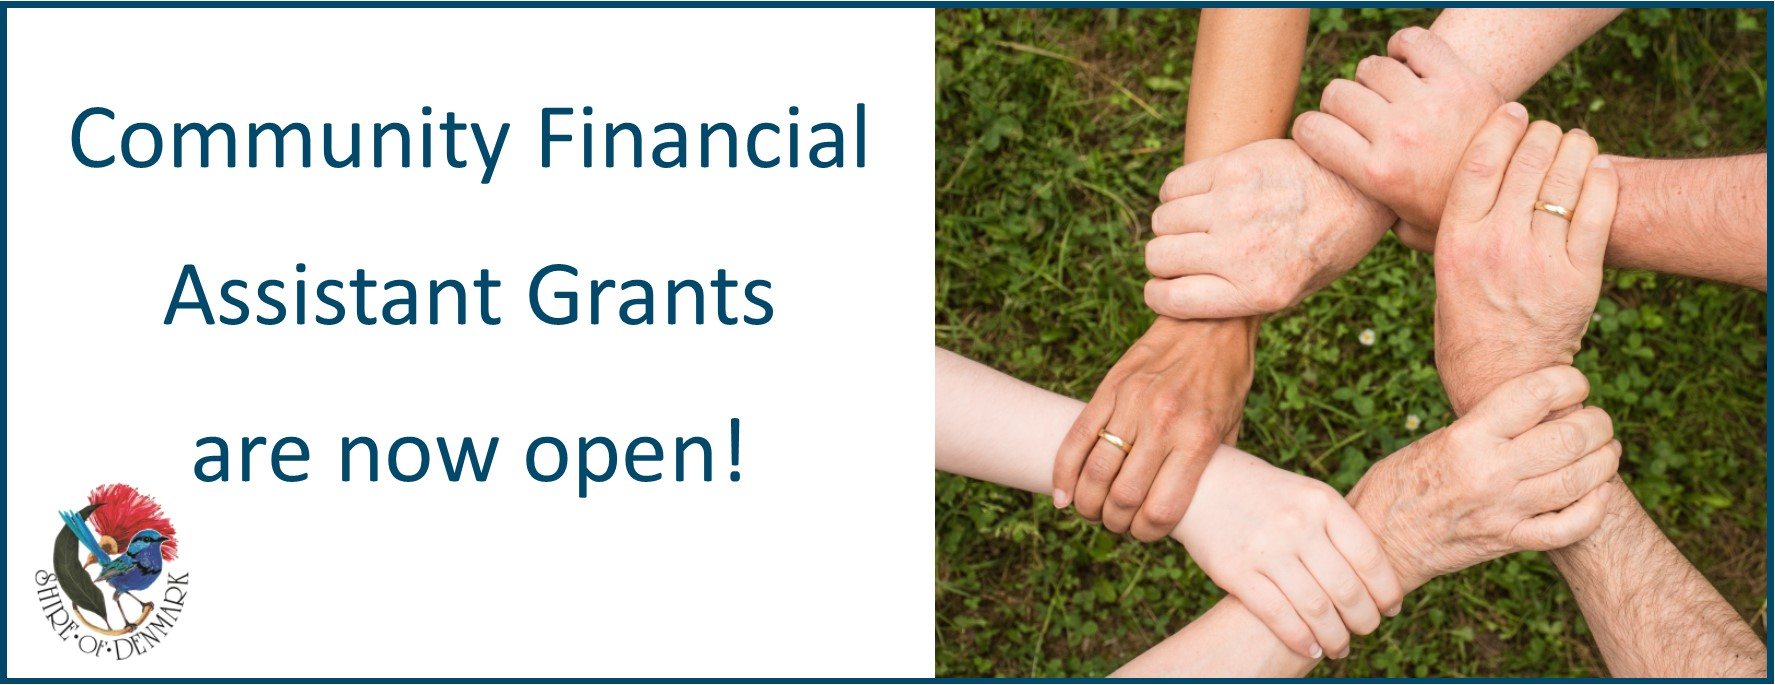 Community Financial Assistance Grants Now Open!